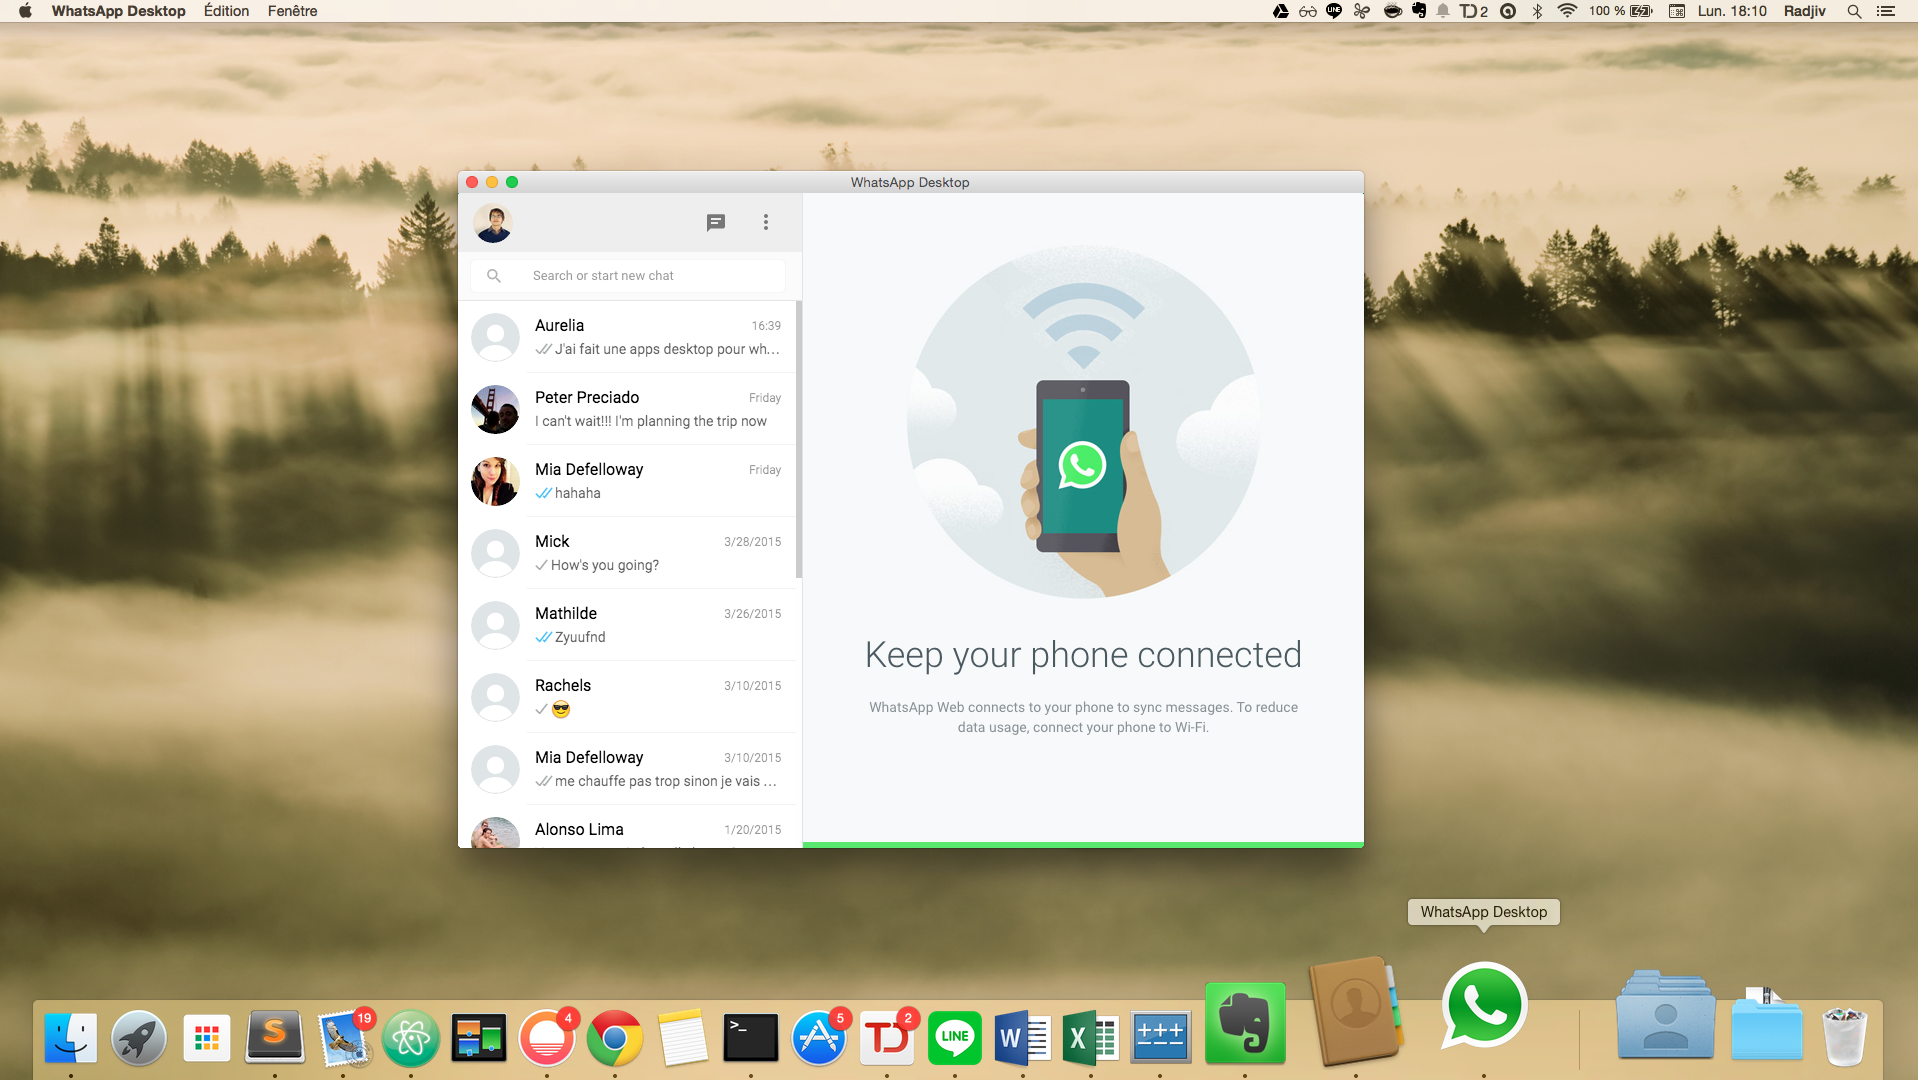 whatsapp-desktop-app-is-now-available-for-mac-and-windows-the-tech-news